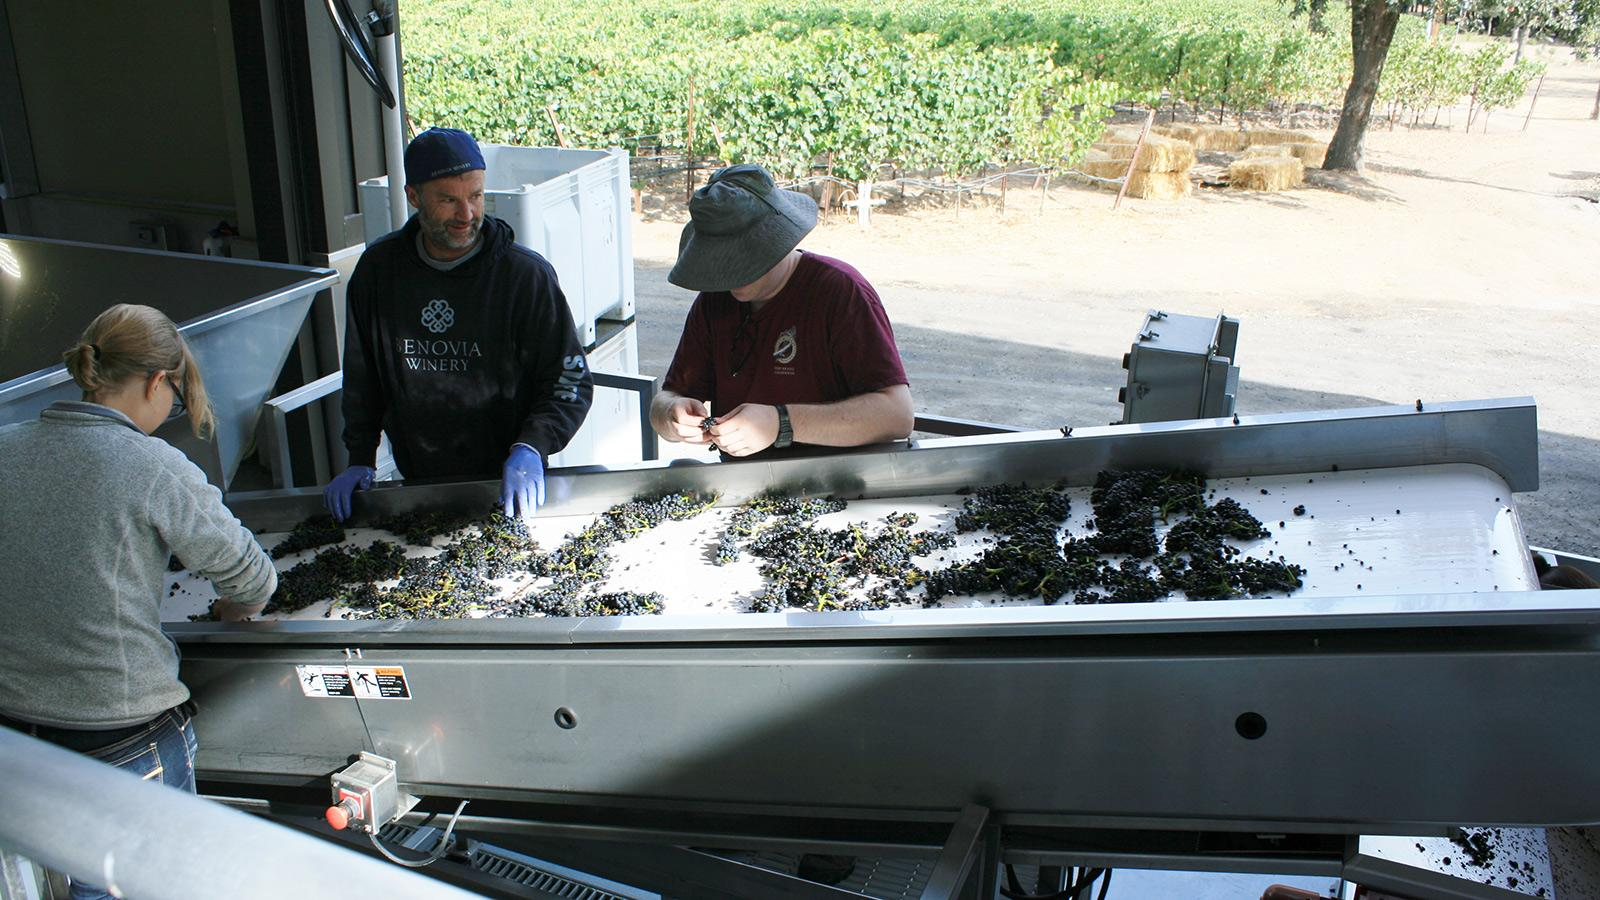 Wine Harvest 2015: Sonoma Vintners Are Optimistic After an Early Harvest